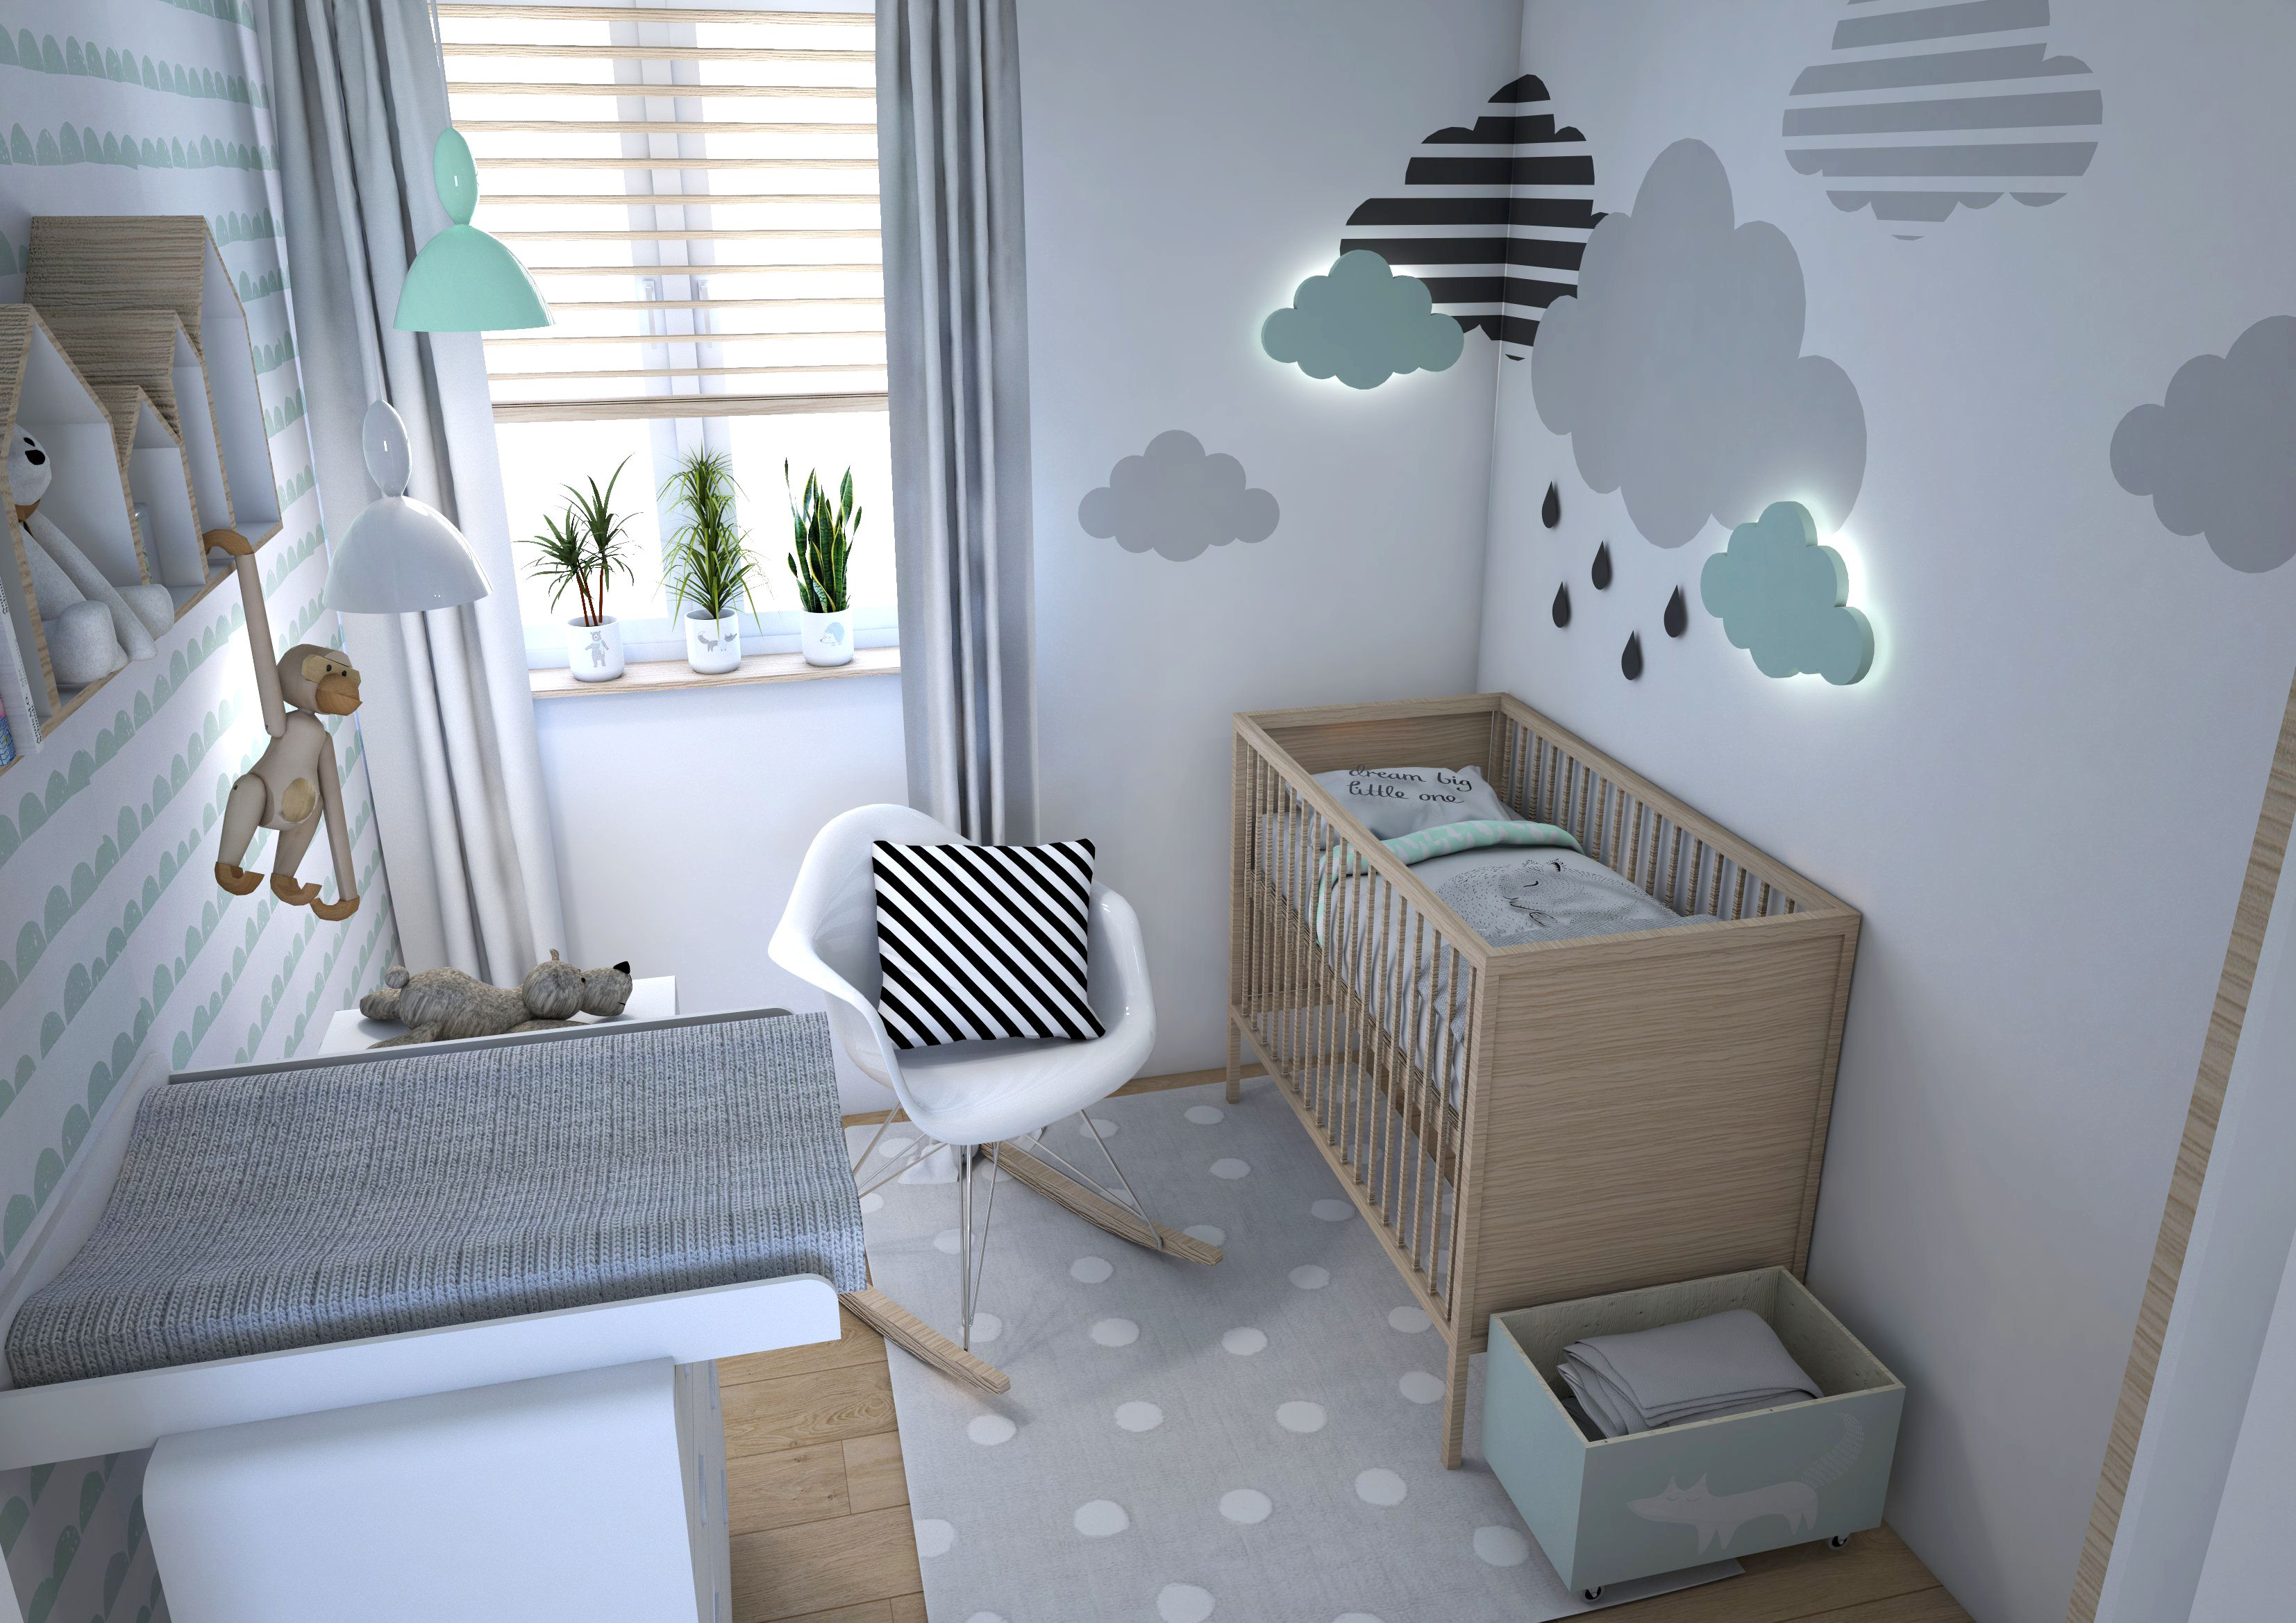 lumieres nuages mint  Decoracion habitacion bebe, Decoracion